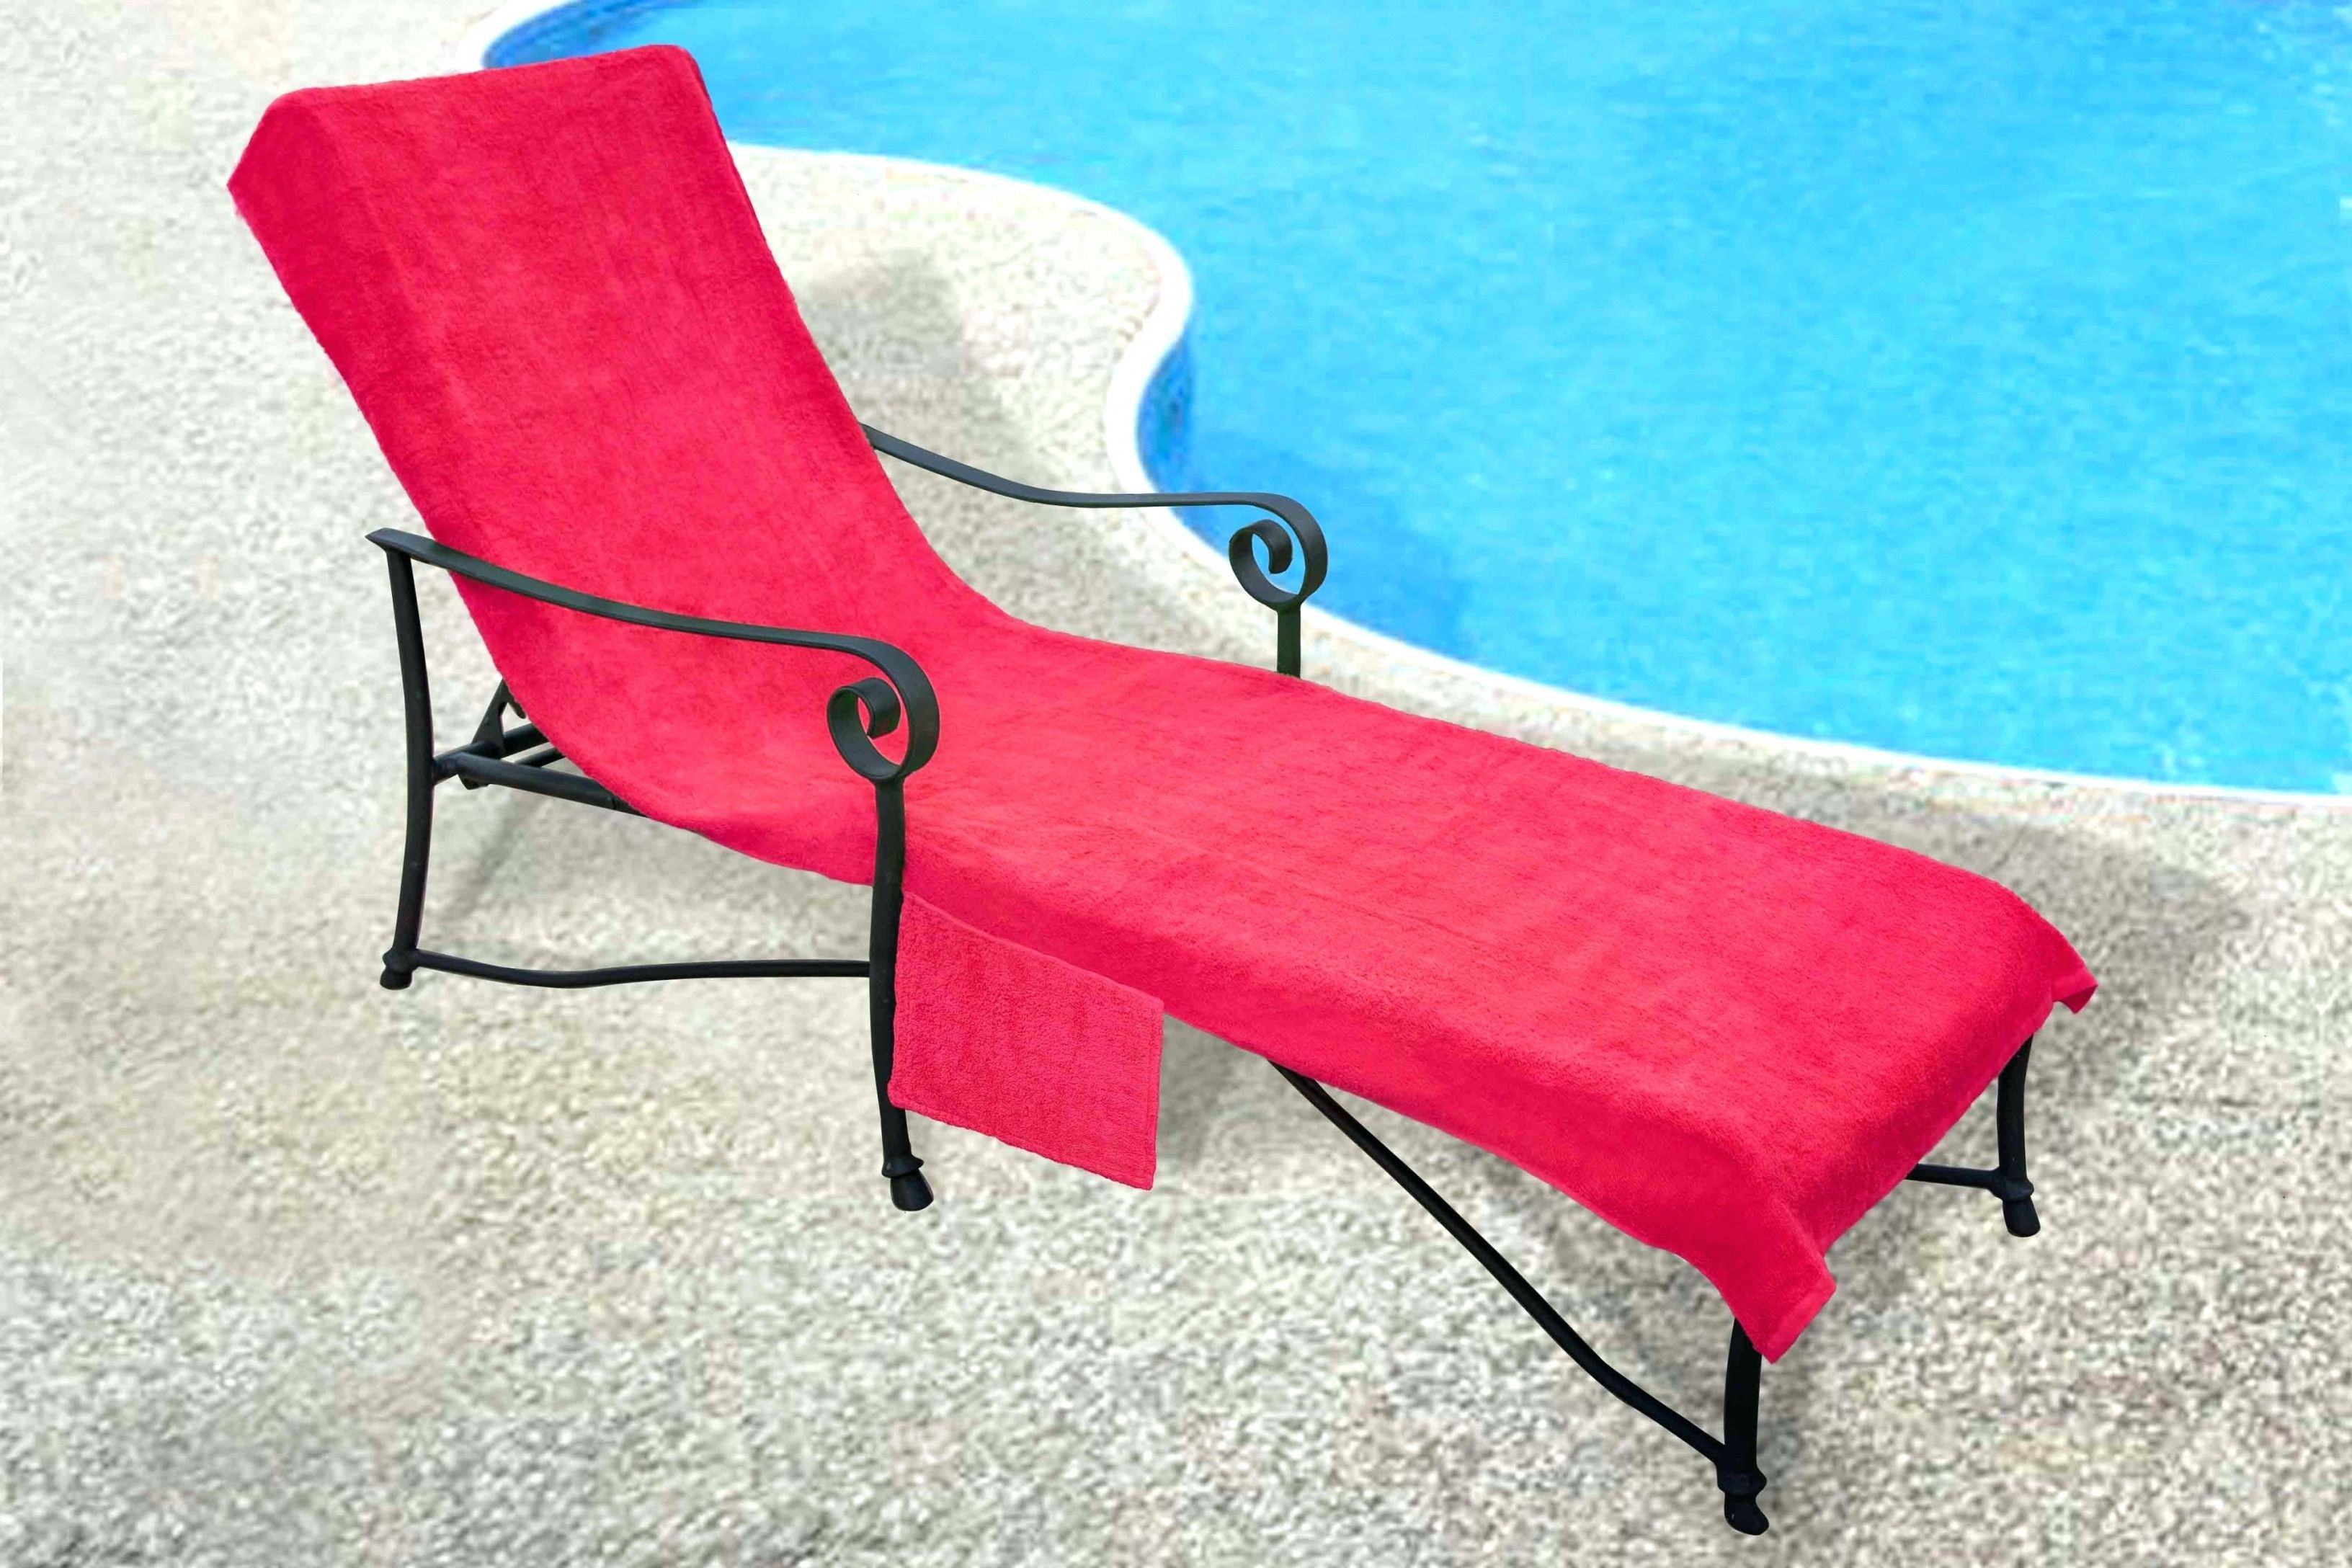 Chair Beach Towels Sun Lounge Chair Cover With Tote Bag Large